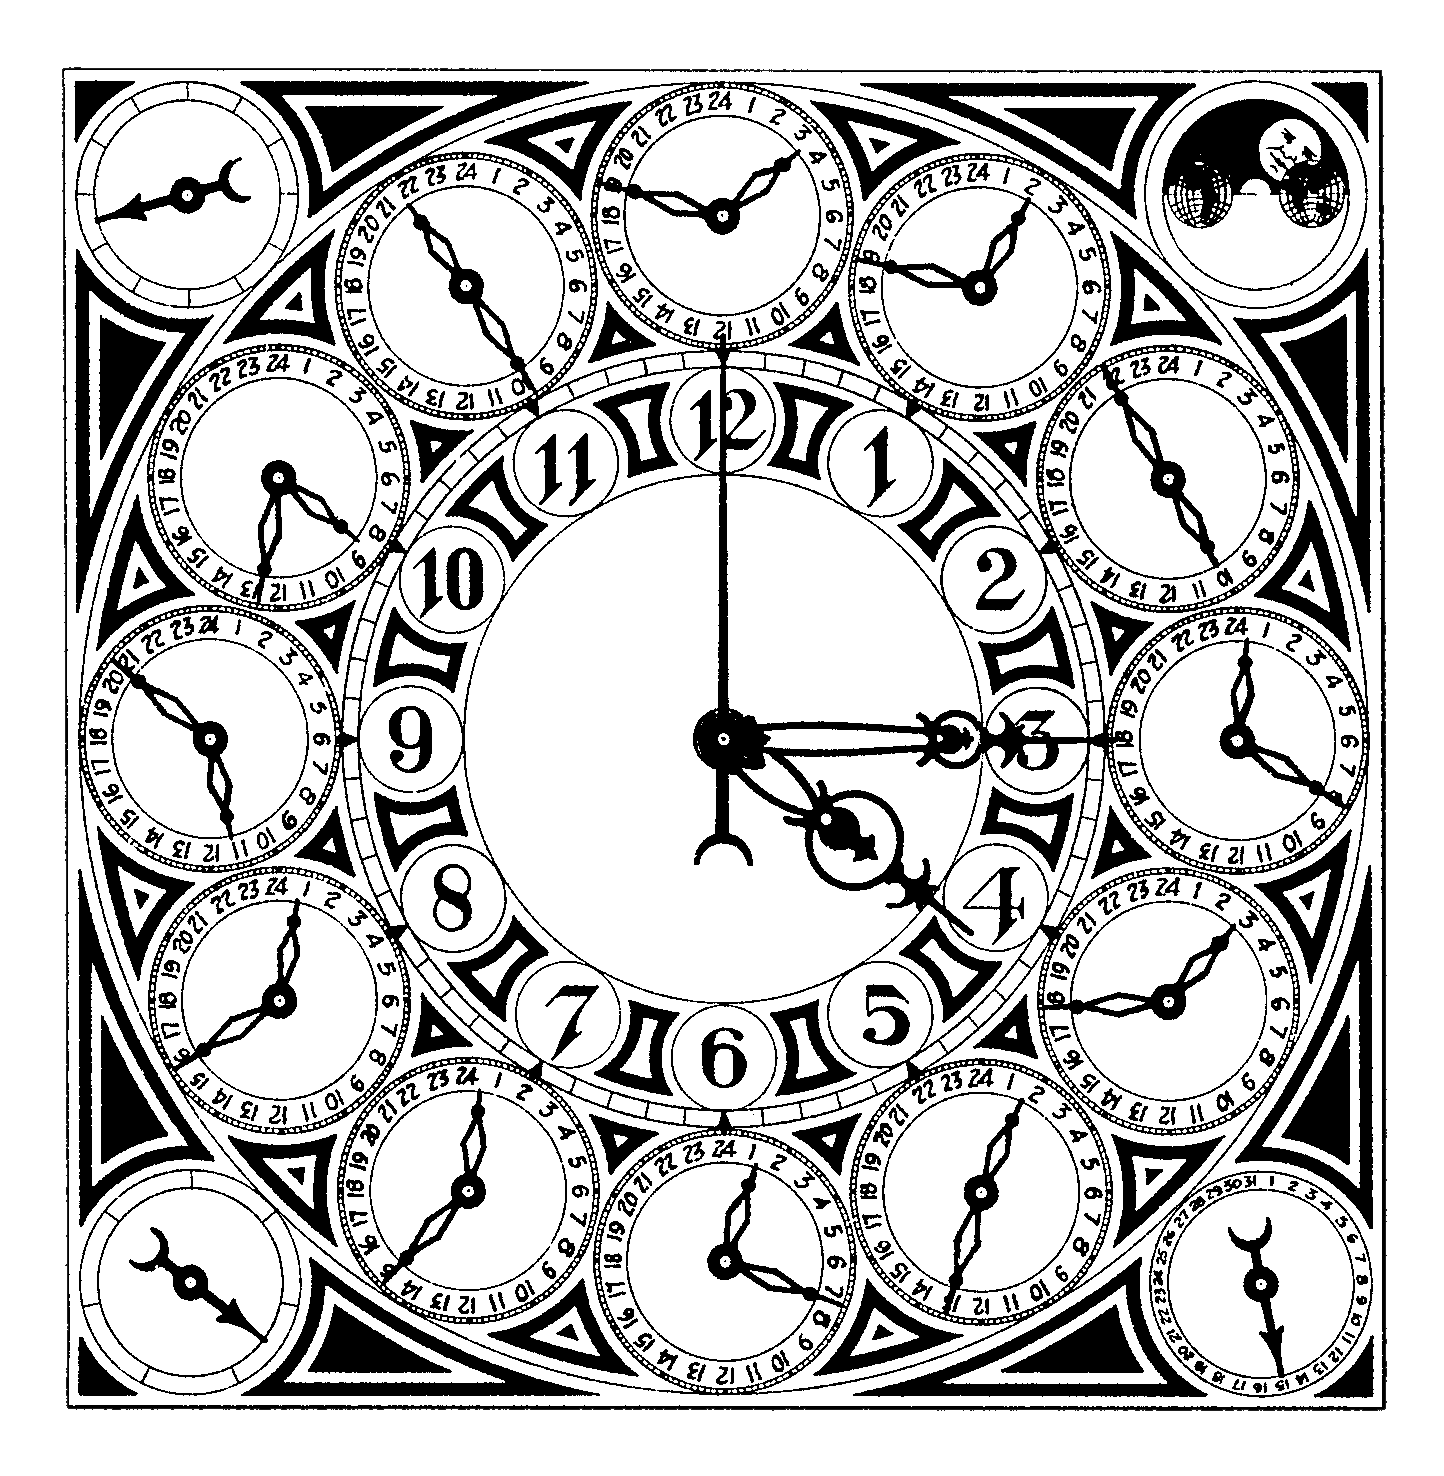 Steampunk clipart retro clock. Drawing at getdrawings com